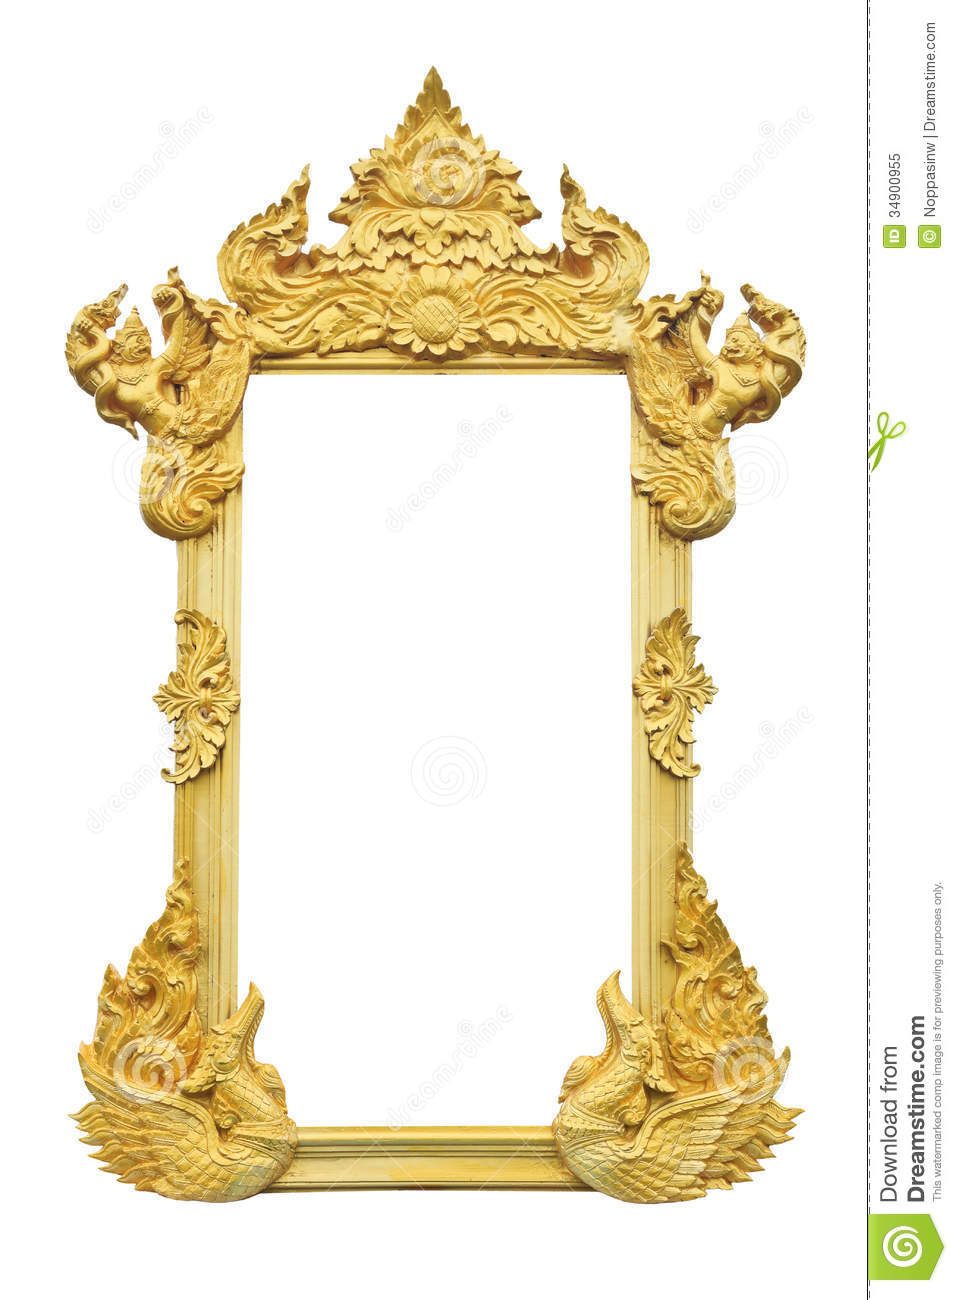 Golden picture frame stock image. Image of blank, frame - 34900955